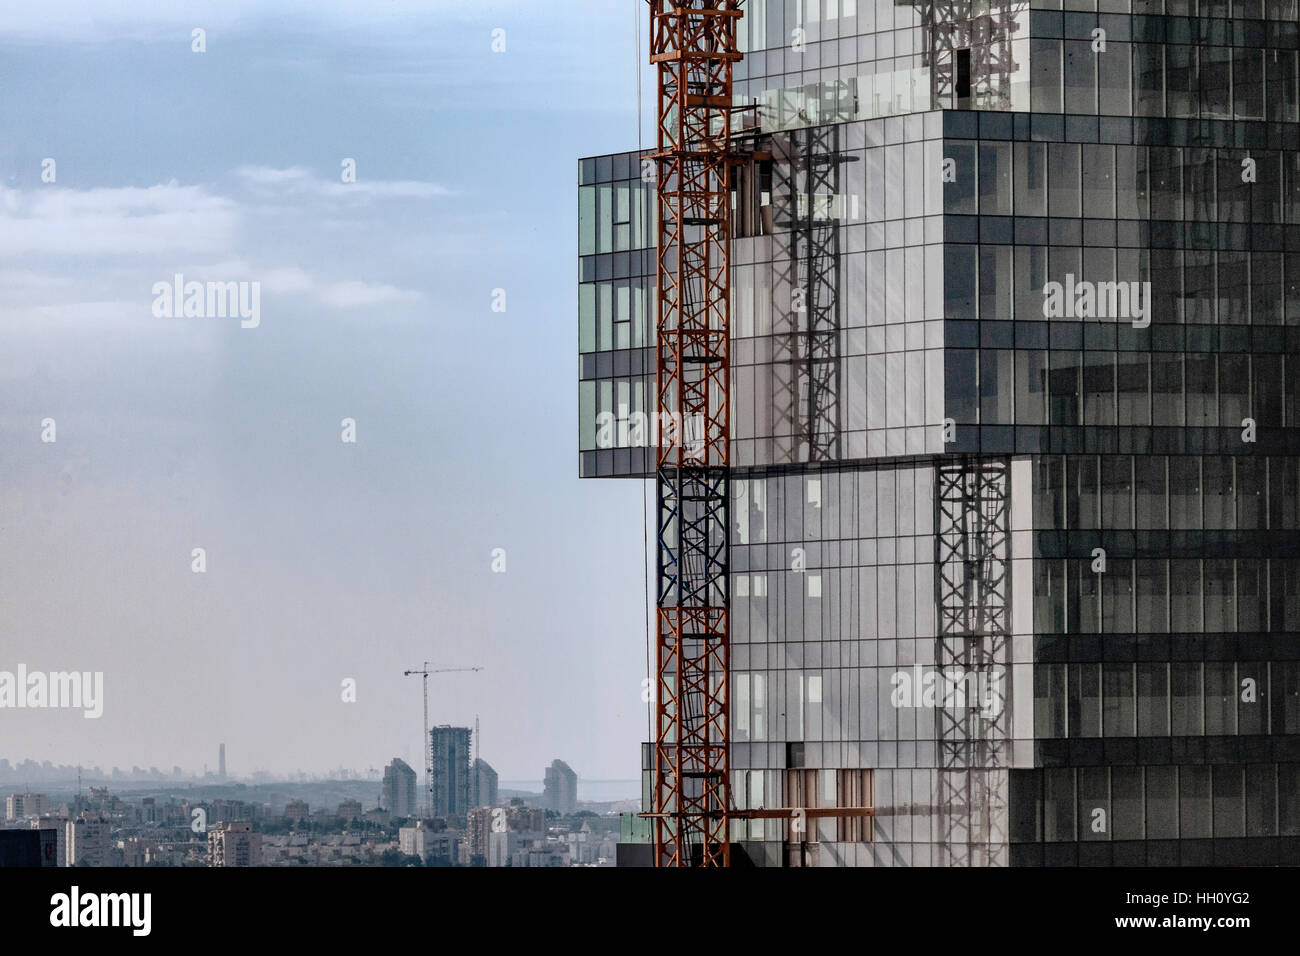 Modern, glass faced High rise building - Stock Image